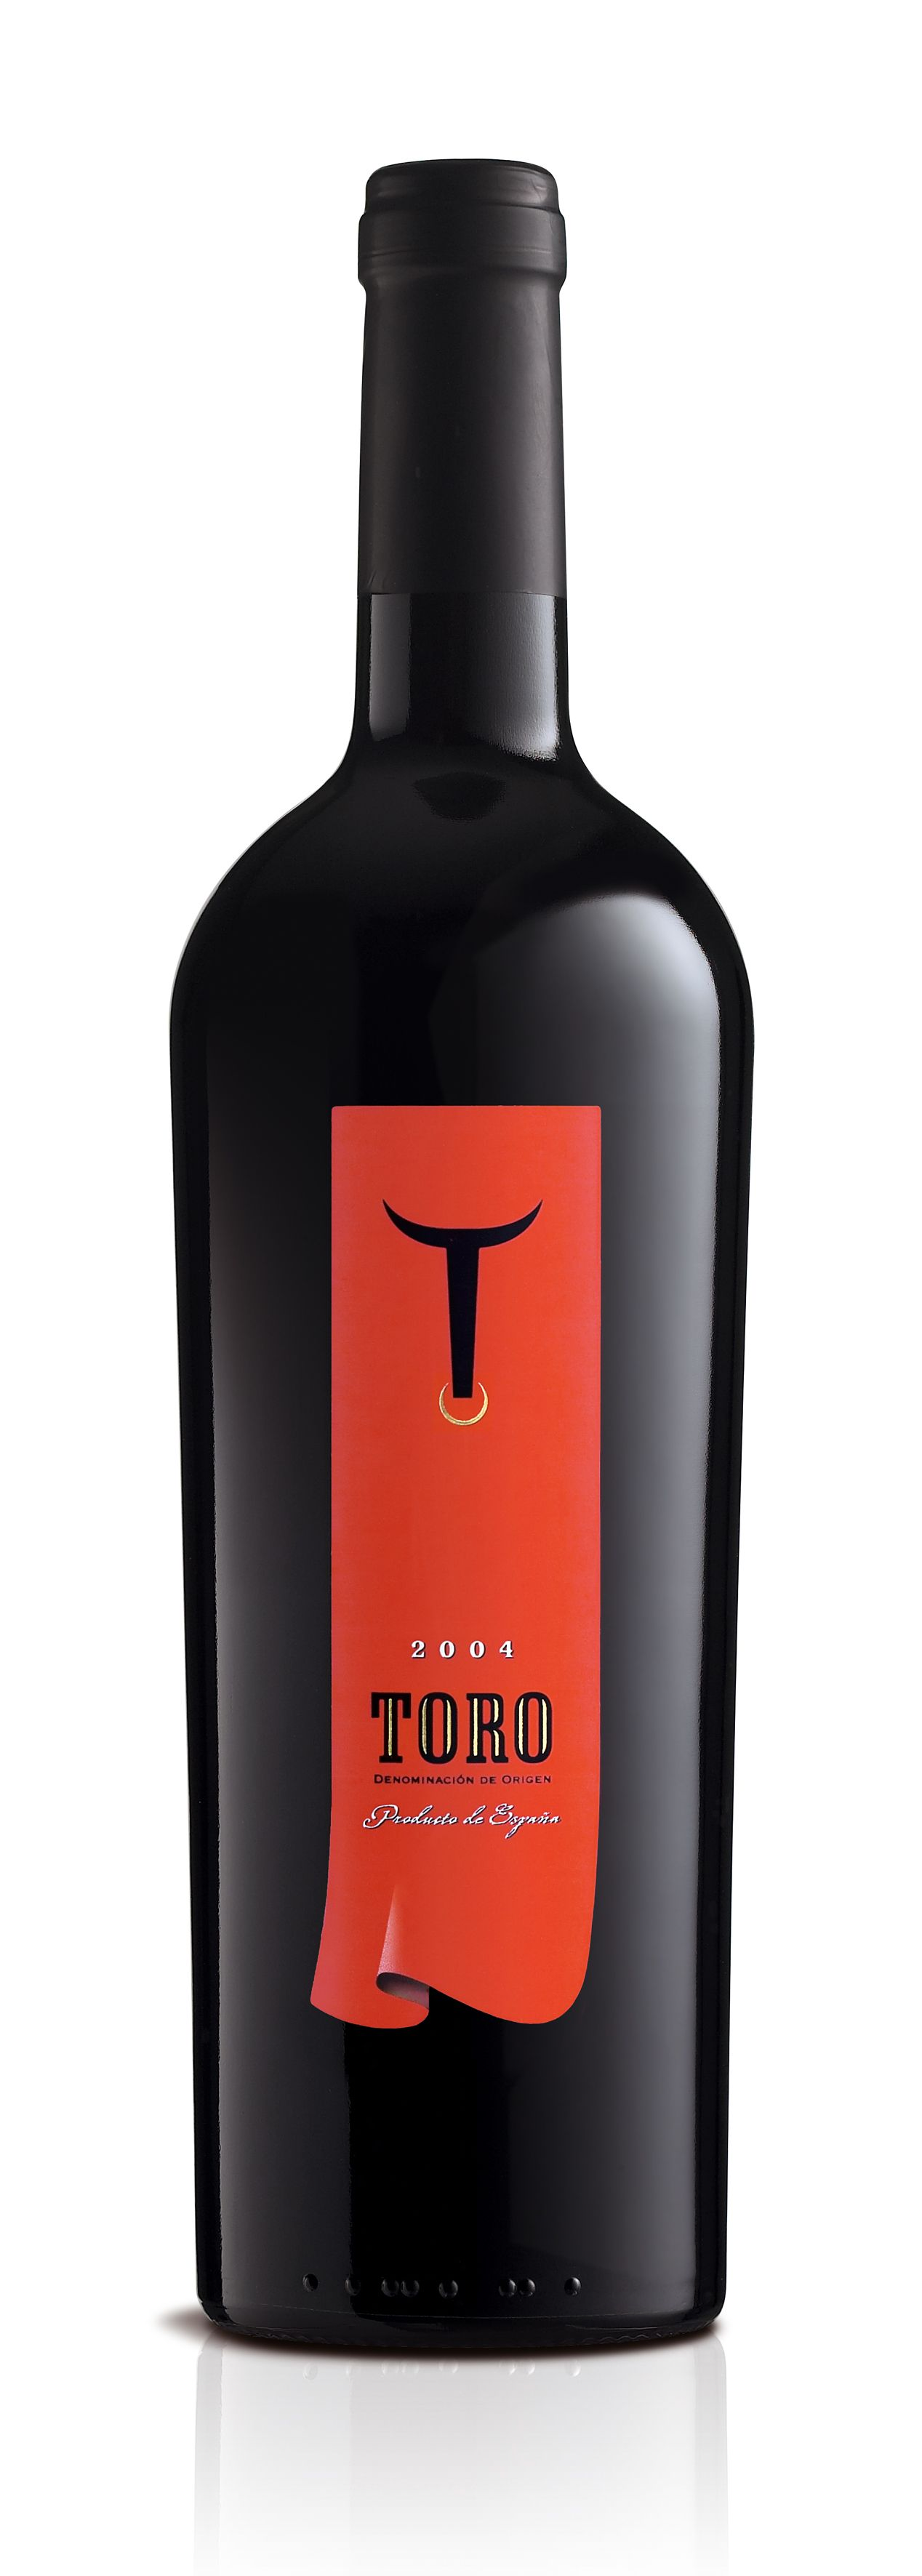 Toro Specifically For The Scandinavian Market 35th Mobius Awards Gold Statuette And Best Of Show Stau Wine Packaging Wine Label Design Wine Label Packaging